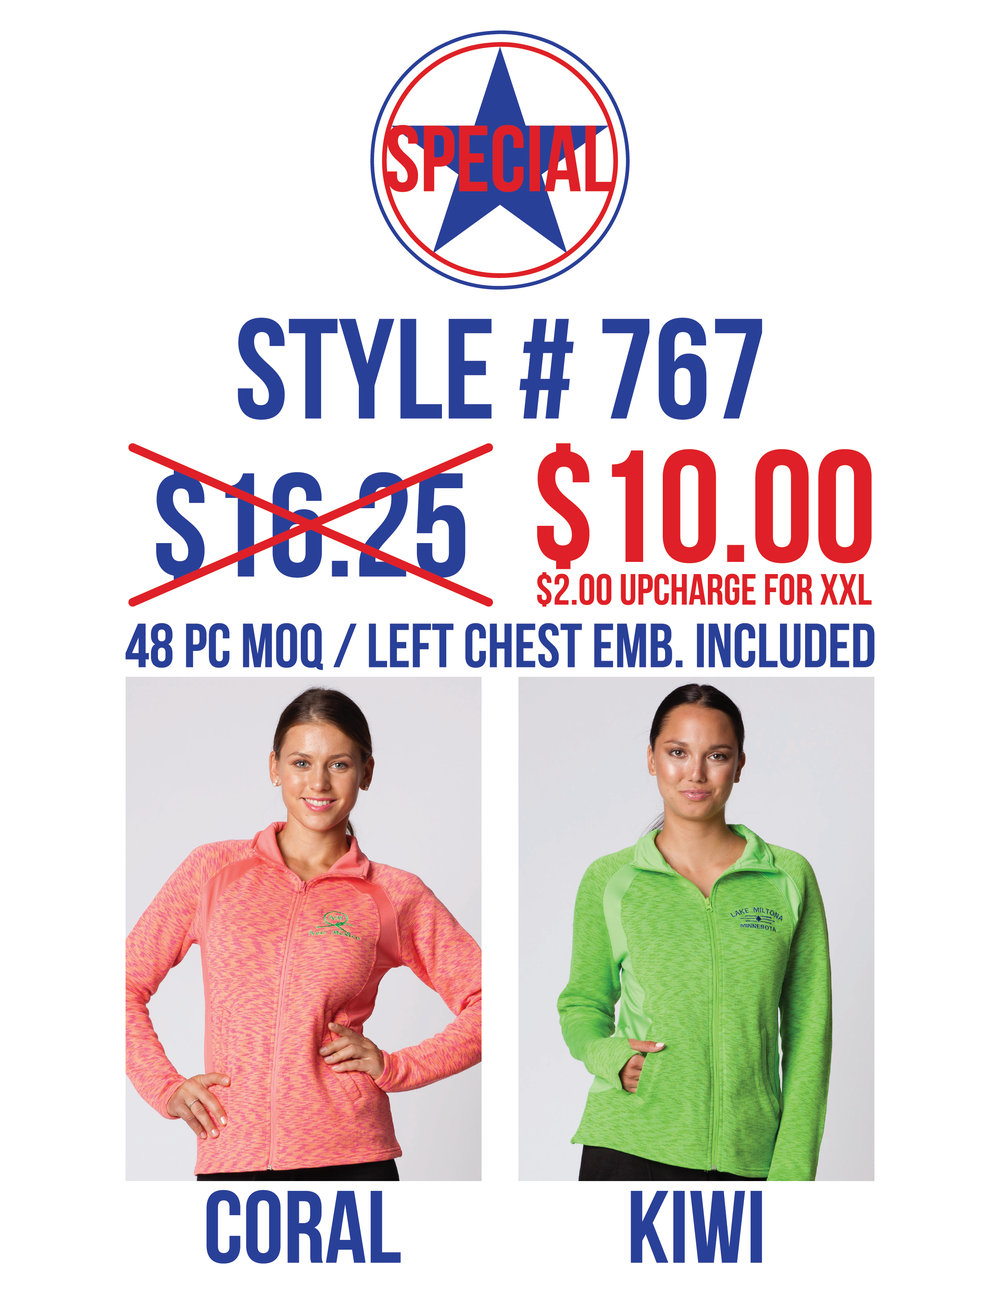 STYLE # 767  - COLORS: CORAL & KIWI48PC MIN / 24PC PER COLOR$10.00 S-XL / $12.00 XXLLEFT CHEST EMBROIDERY UP TO 6,000 STITCHES INCLUDED IN PRICE